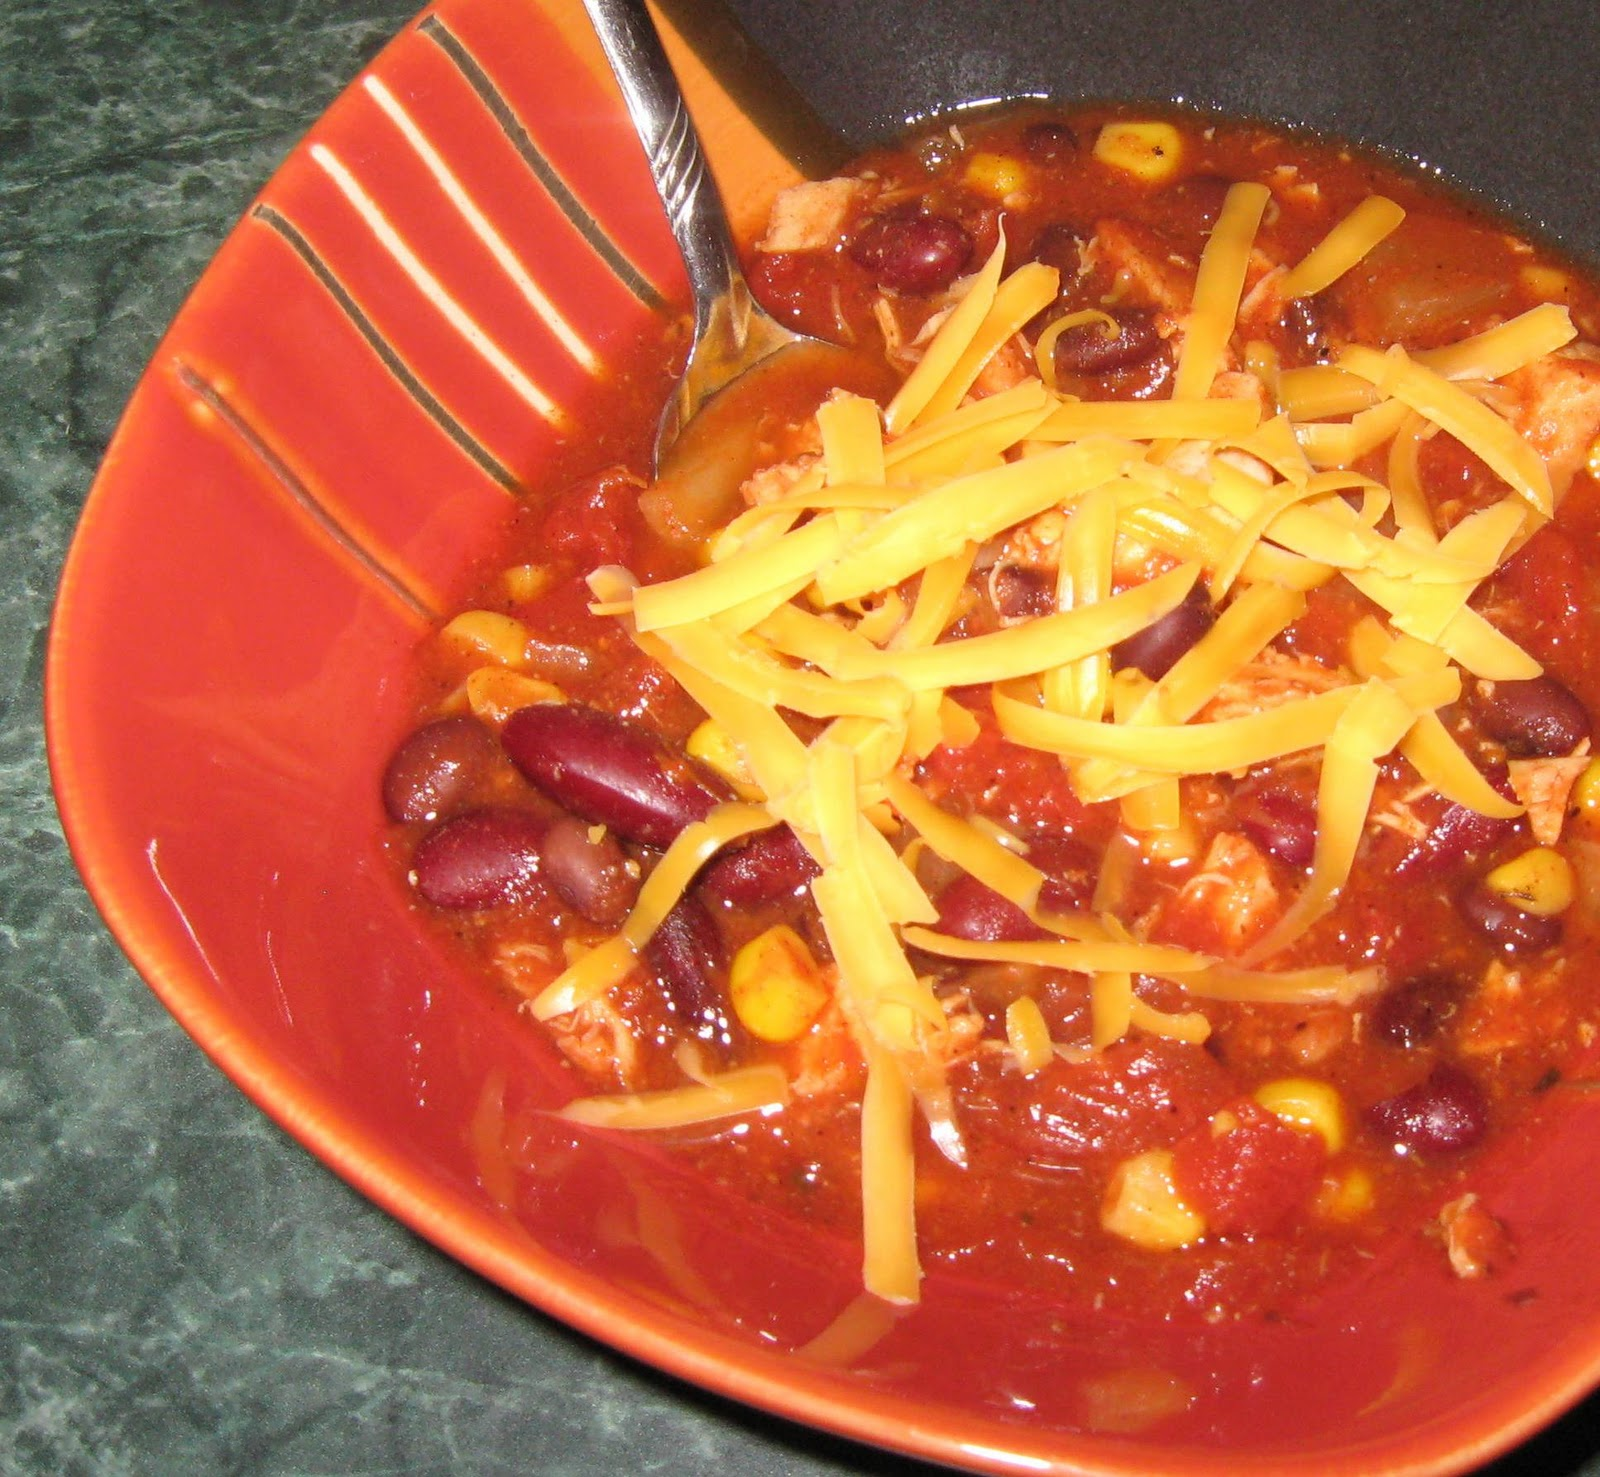 Debbi Does Dinner... Healthy & Low Calorie: Slow Cooker Taco Chili